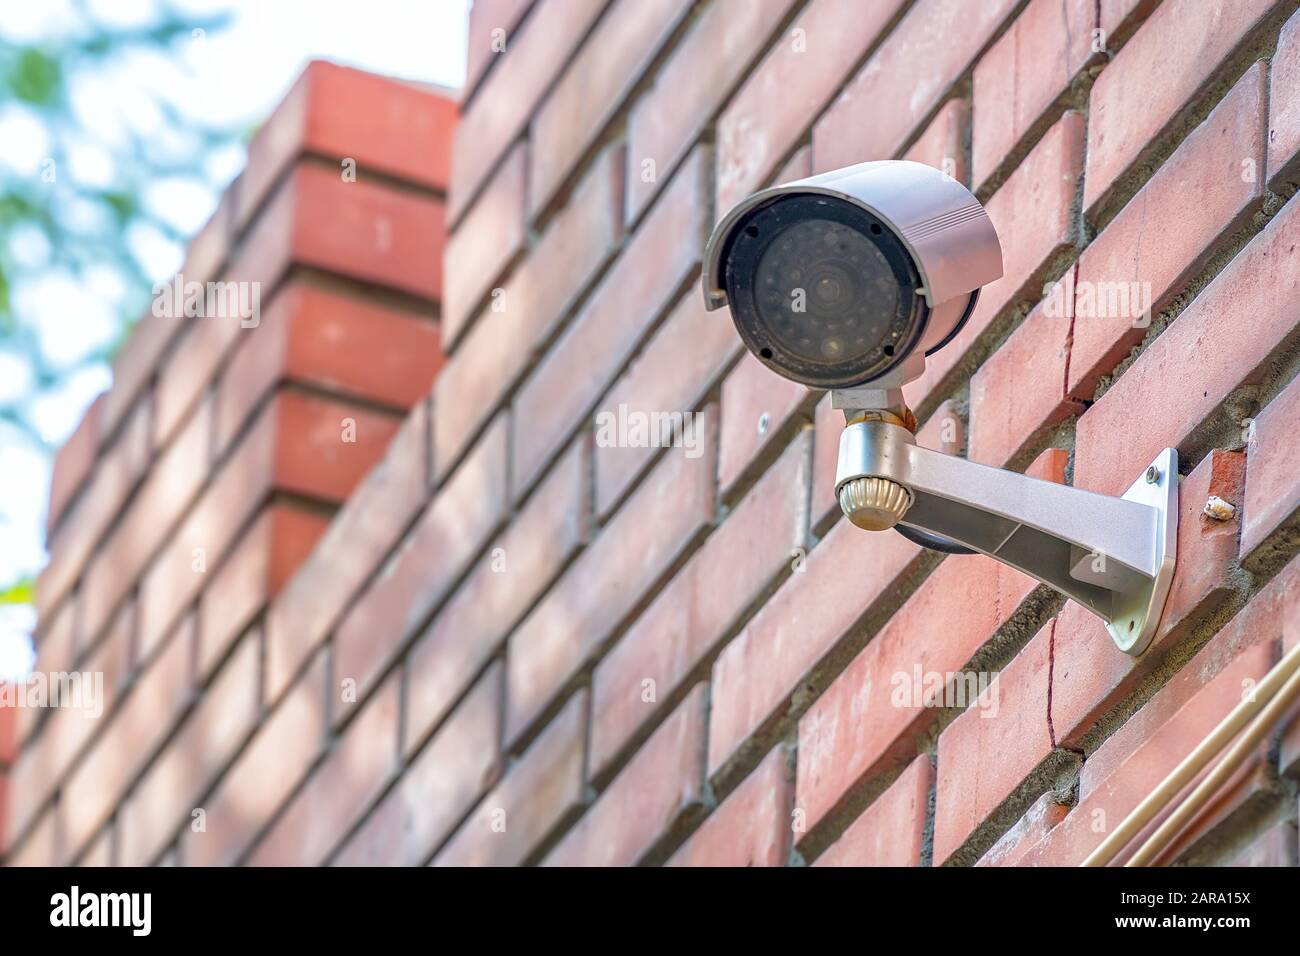 Surveillance camera on a red brick wall Stock Photo